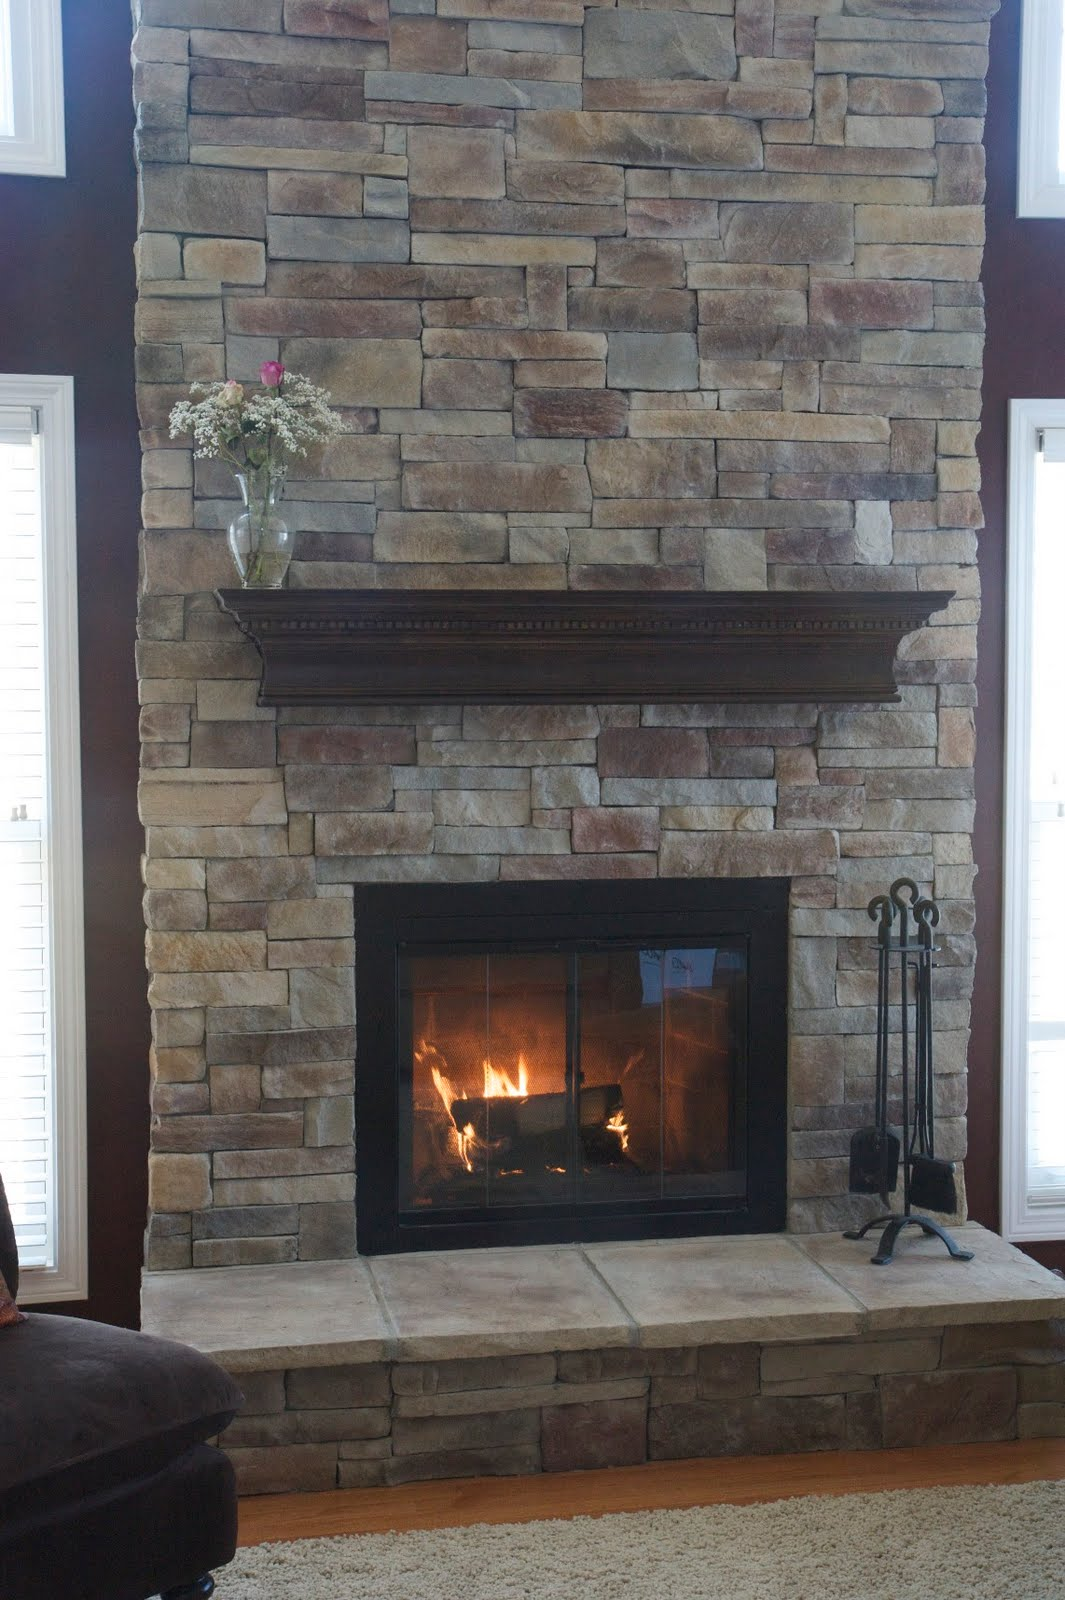 North Star Stone Stone Fireplaces & Stone Exteriors